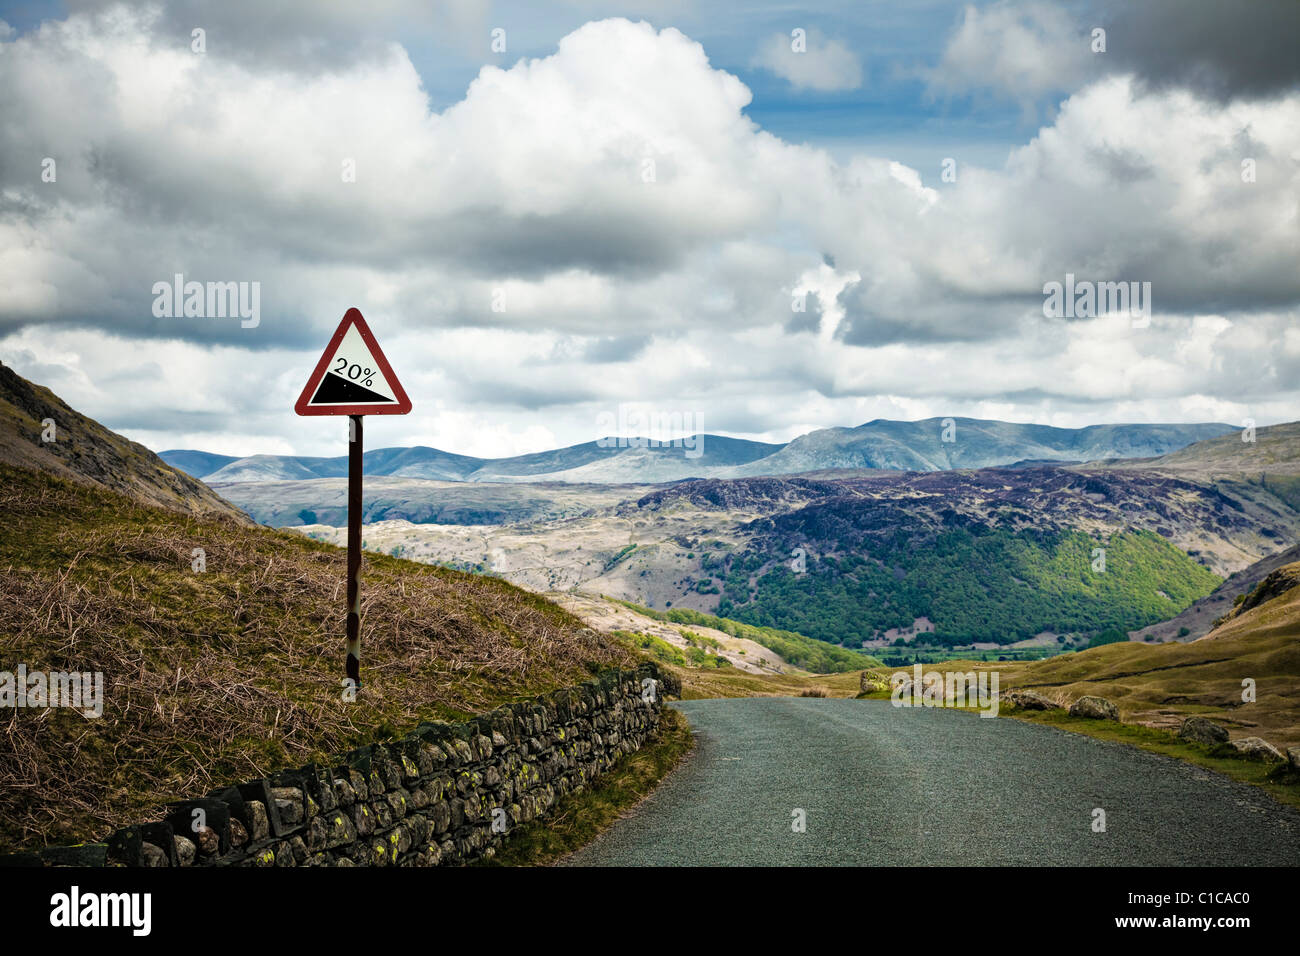 Gradient road sign on a rural mountain road hill at Honister Pass in Borrowdale in The Lake District, England UK - Stock Image